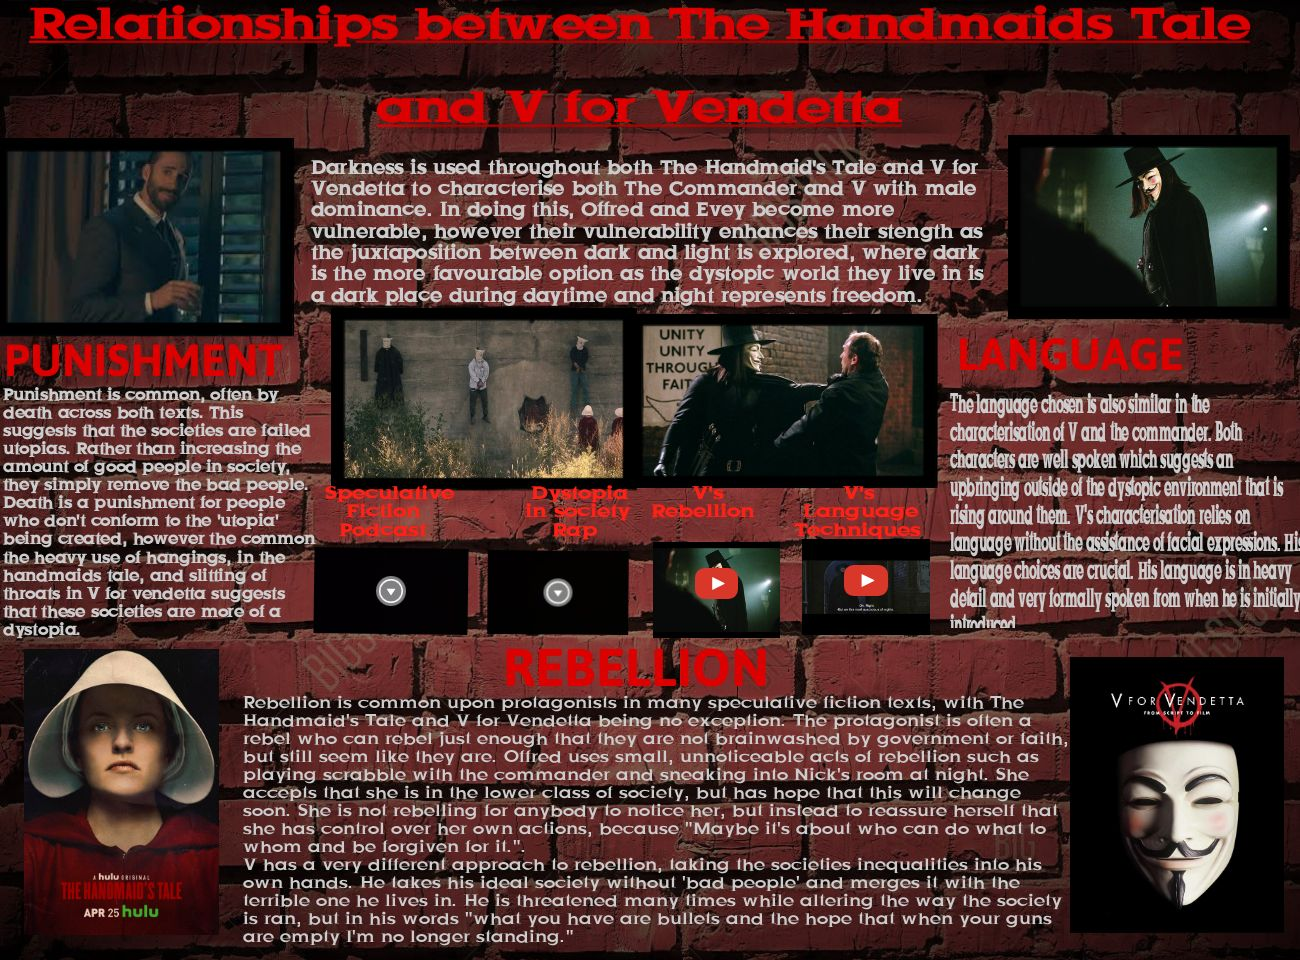 Relationships between The Handmaid's tale and V for Vendetta